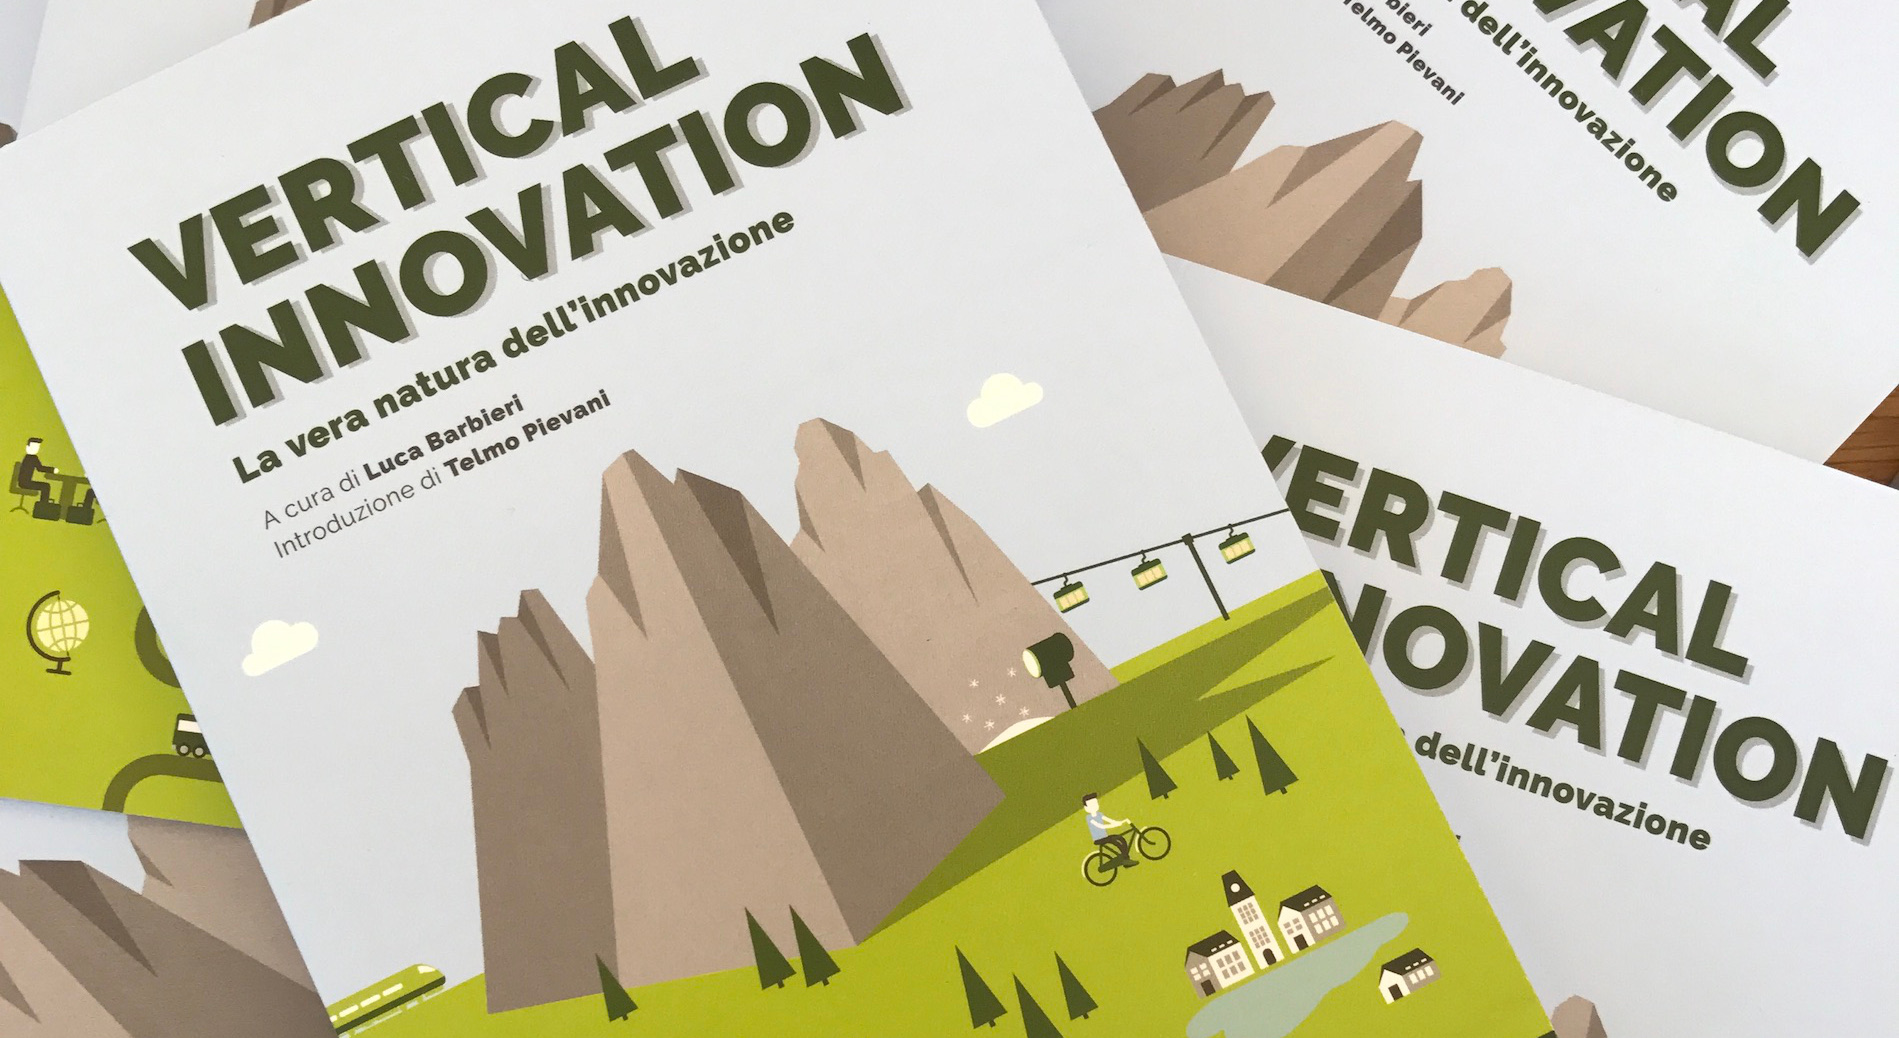 vertical innovation libro copertine